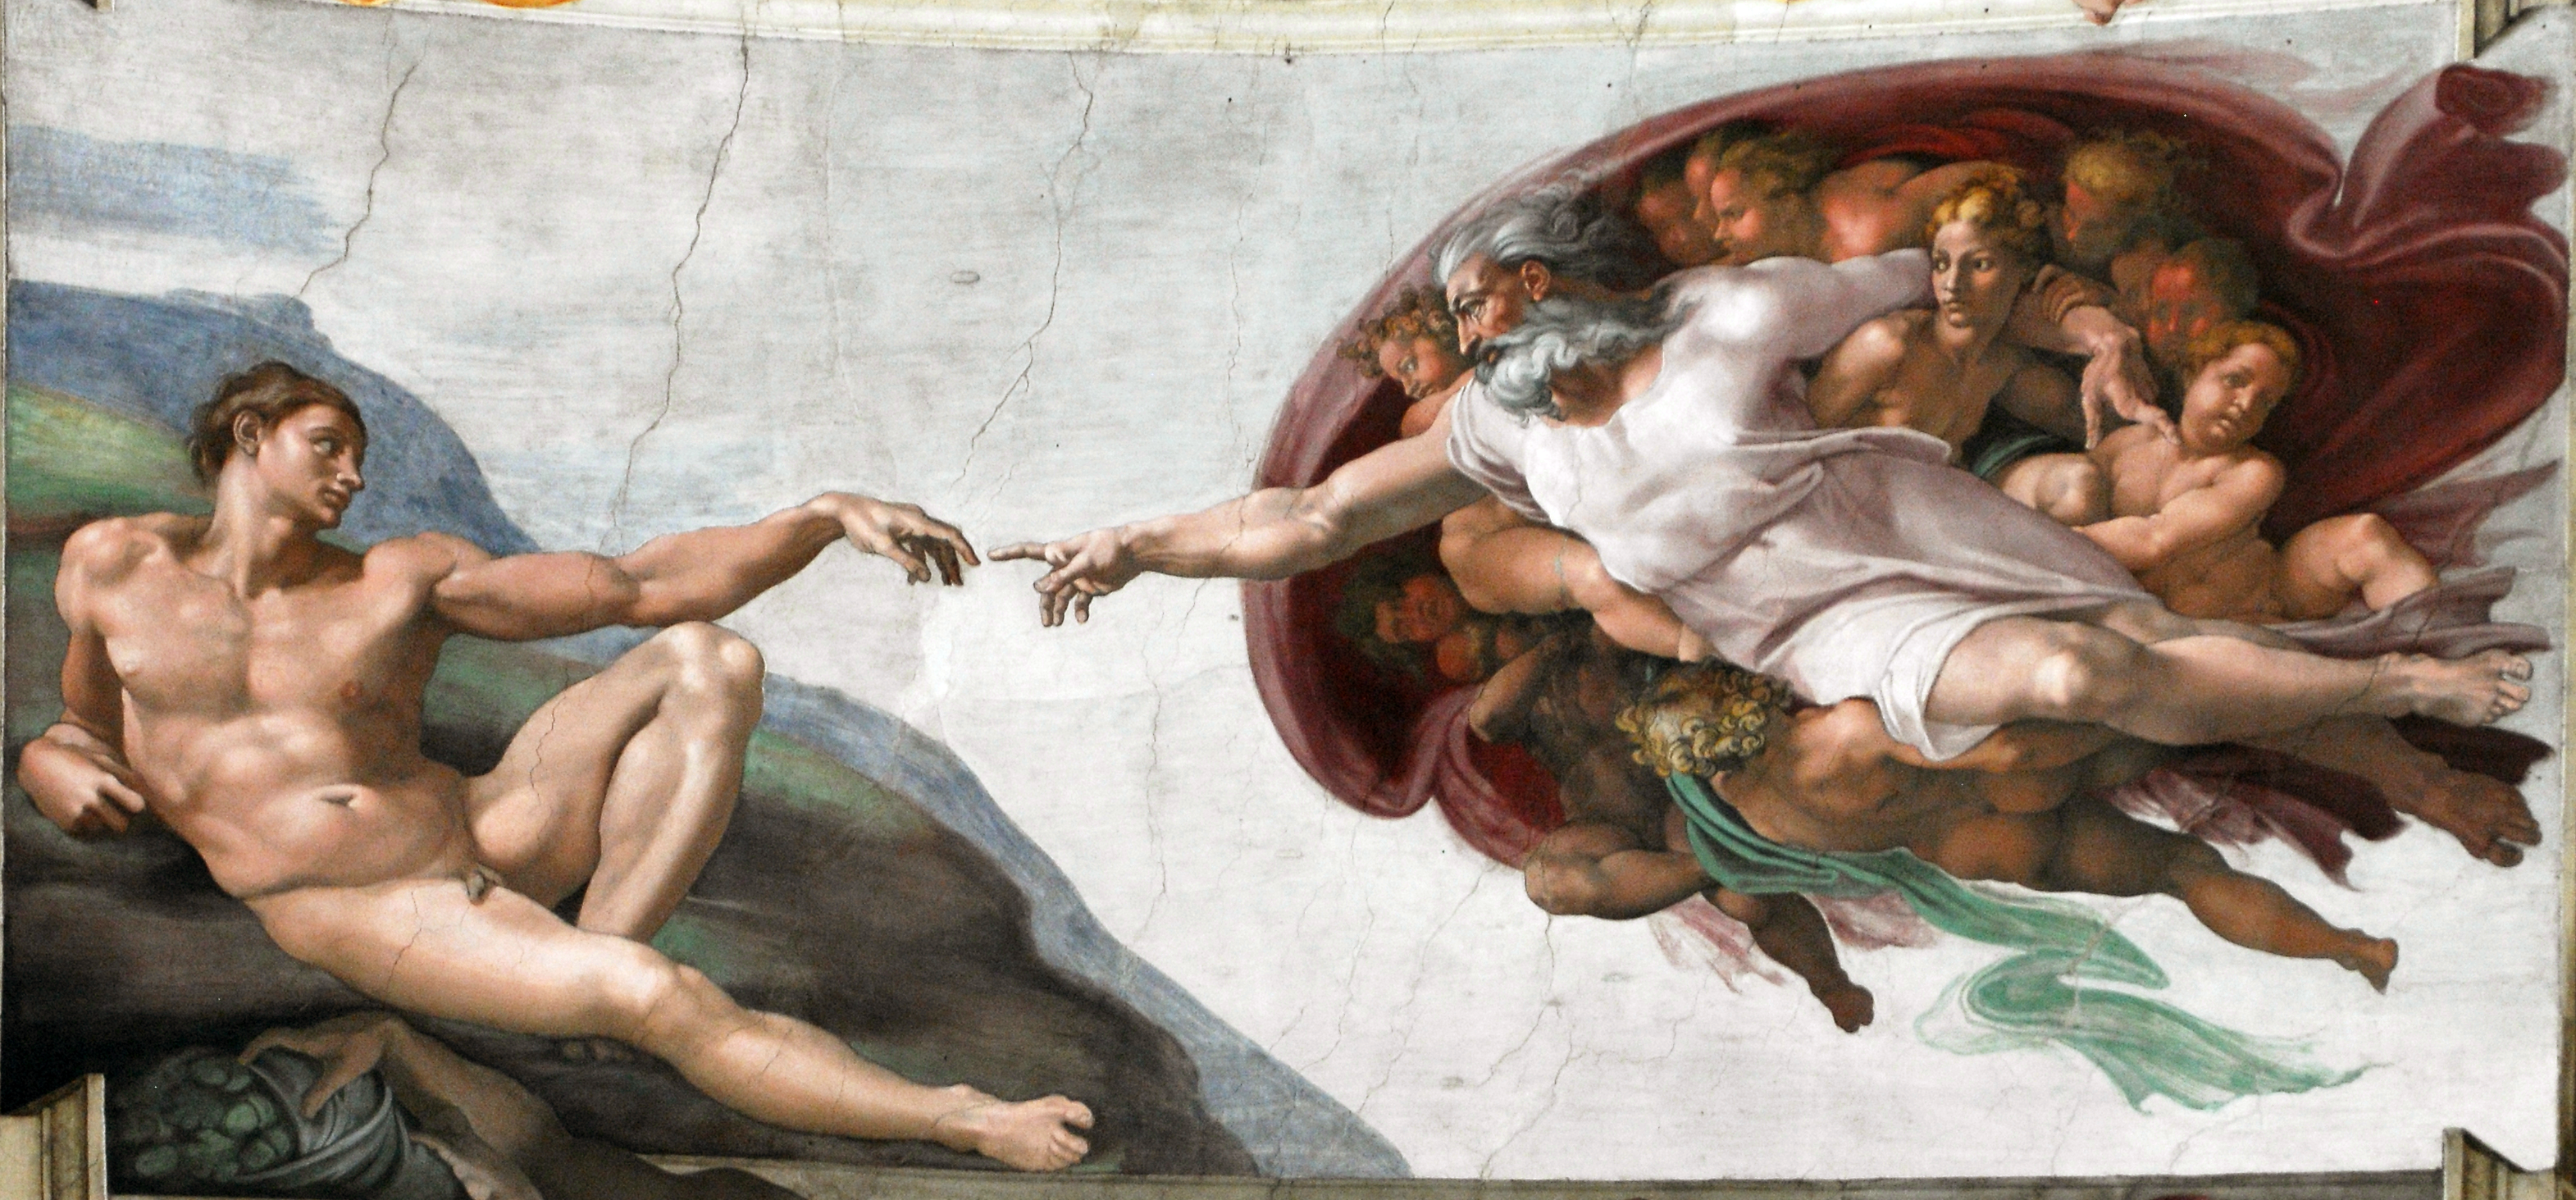 The Creation of Adam, Michelangelo's work in the Sistine Chapel.